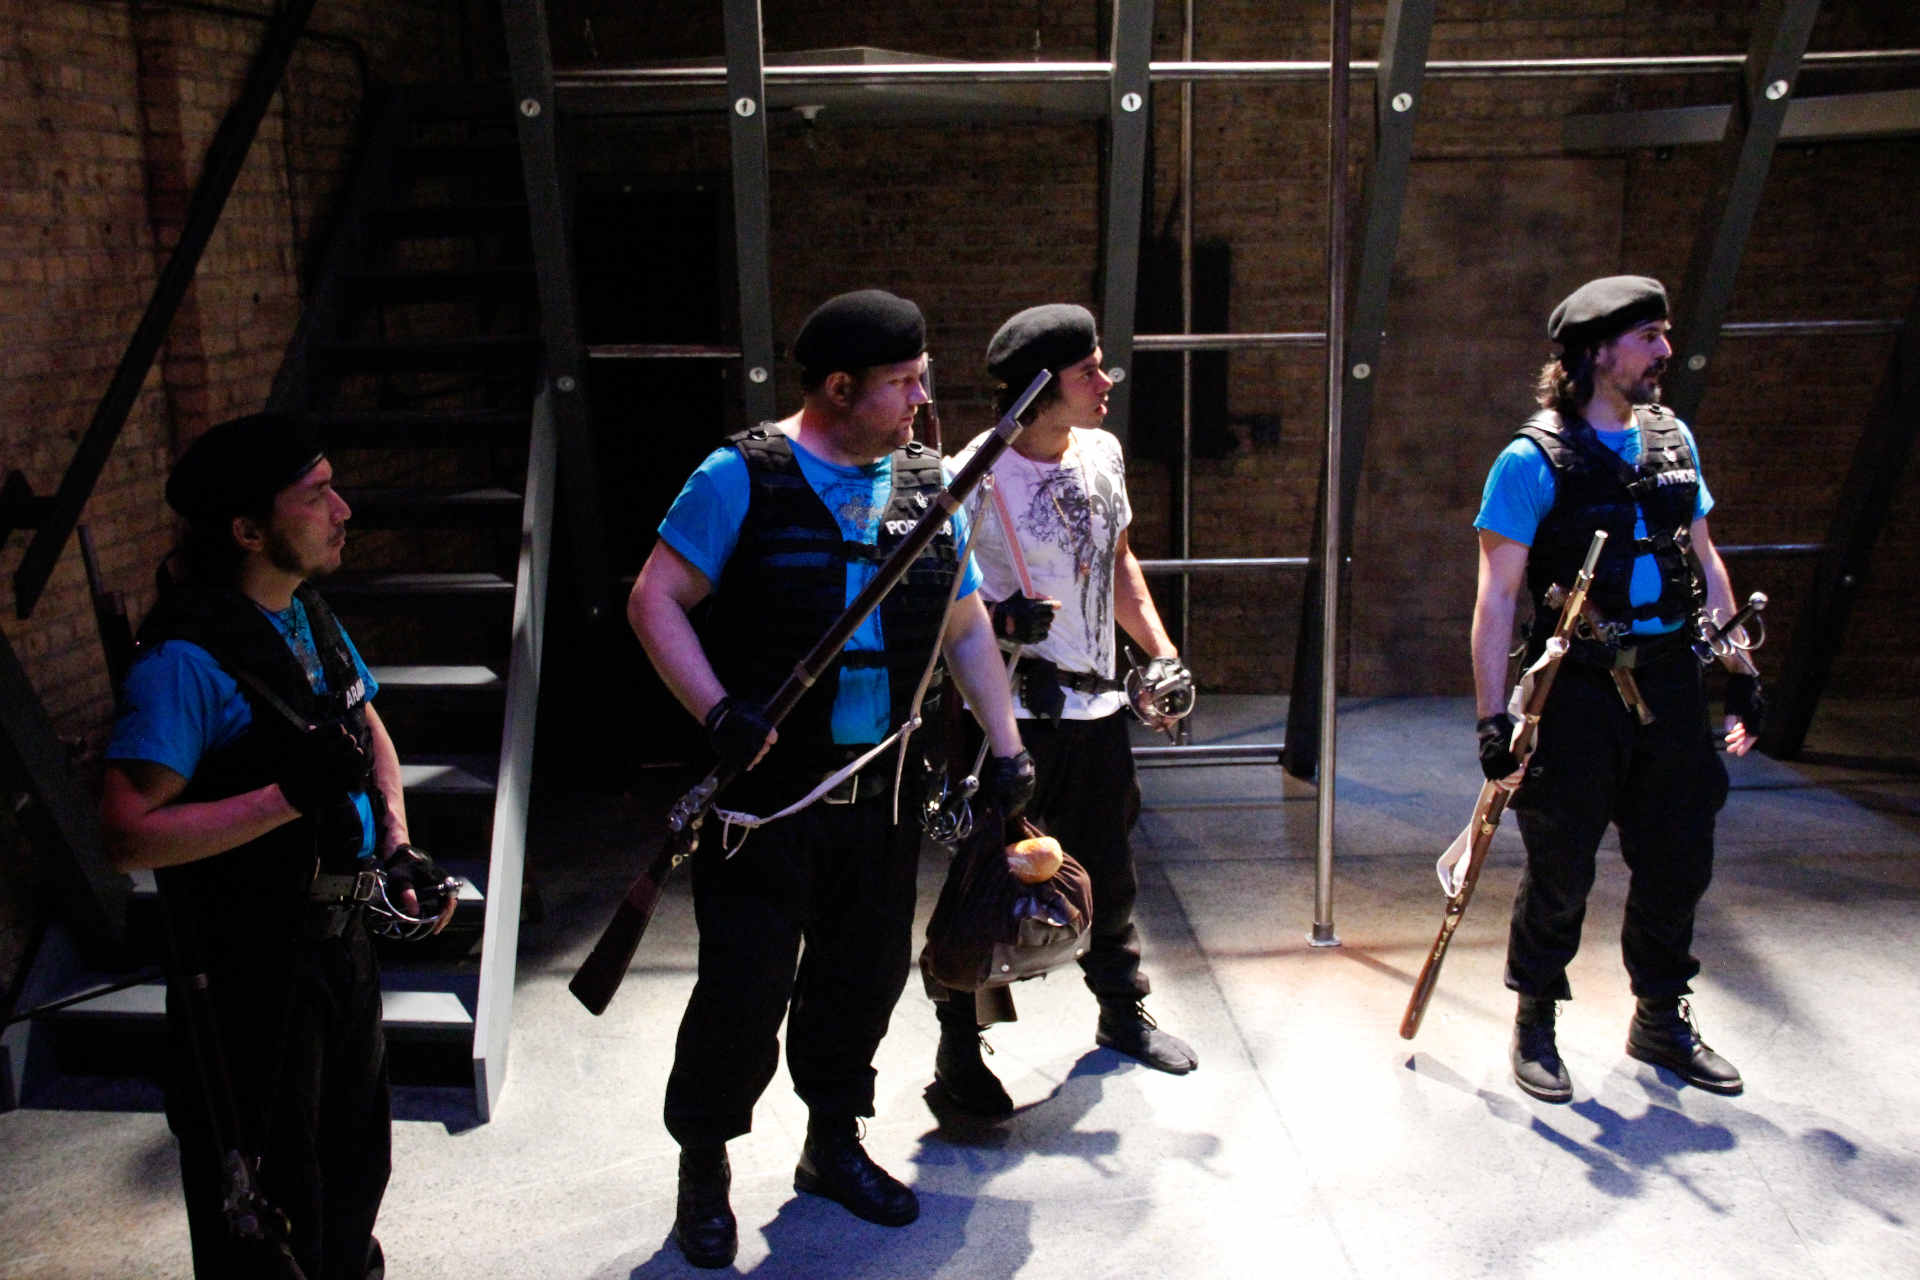 THE THREE MUSKETEERS (Lifeline Theatre, 2013)